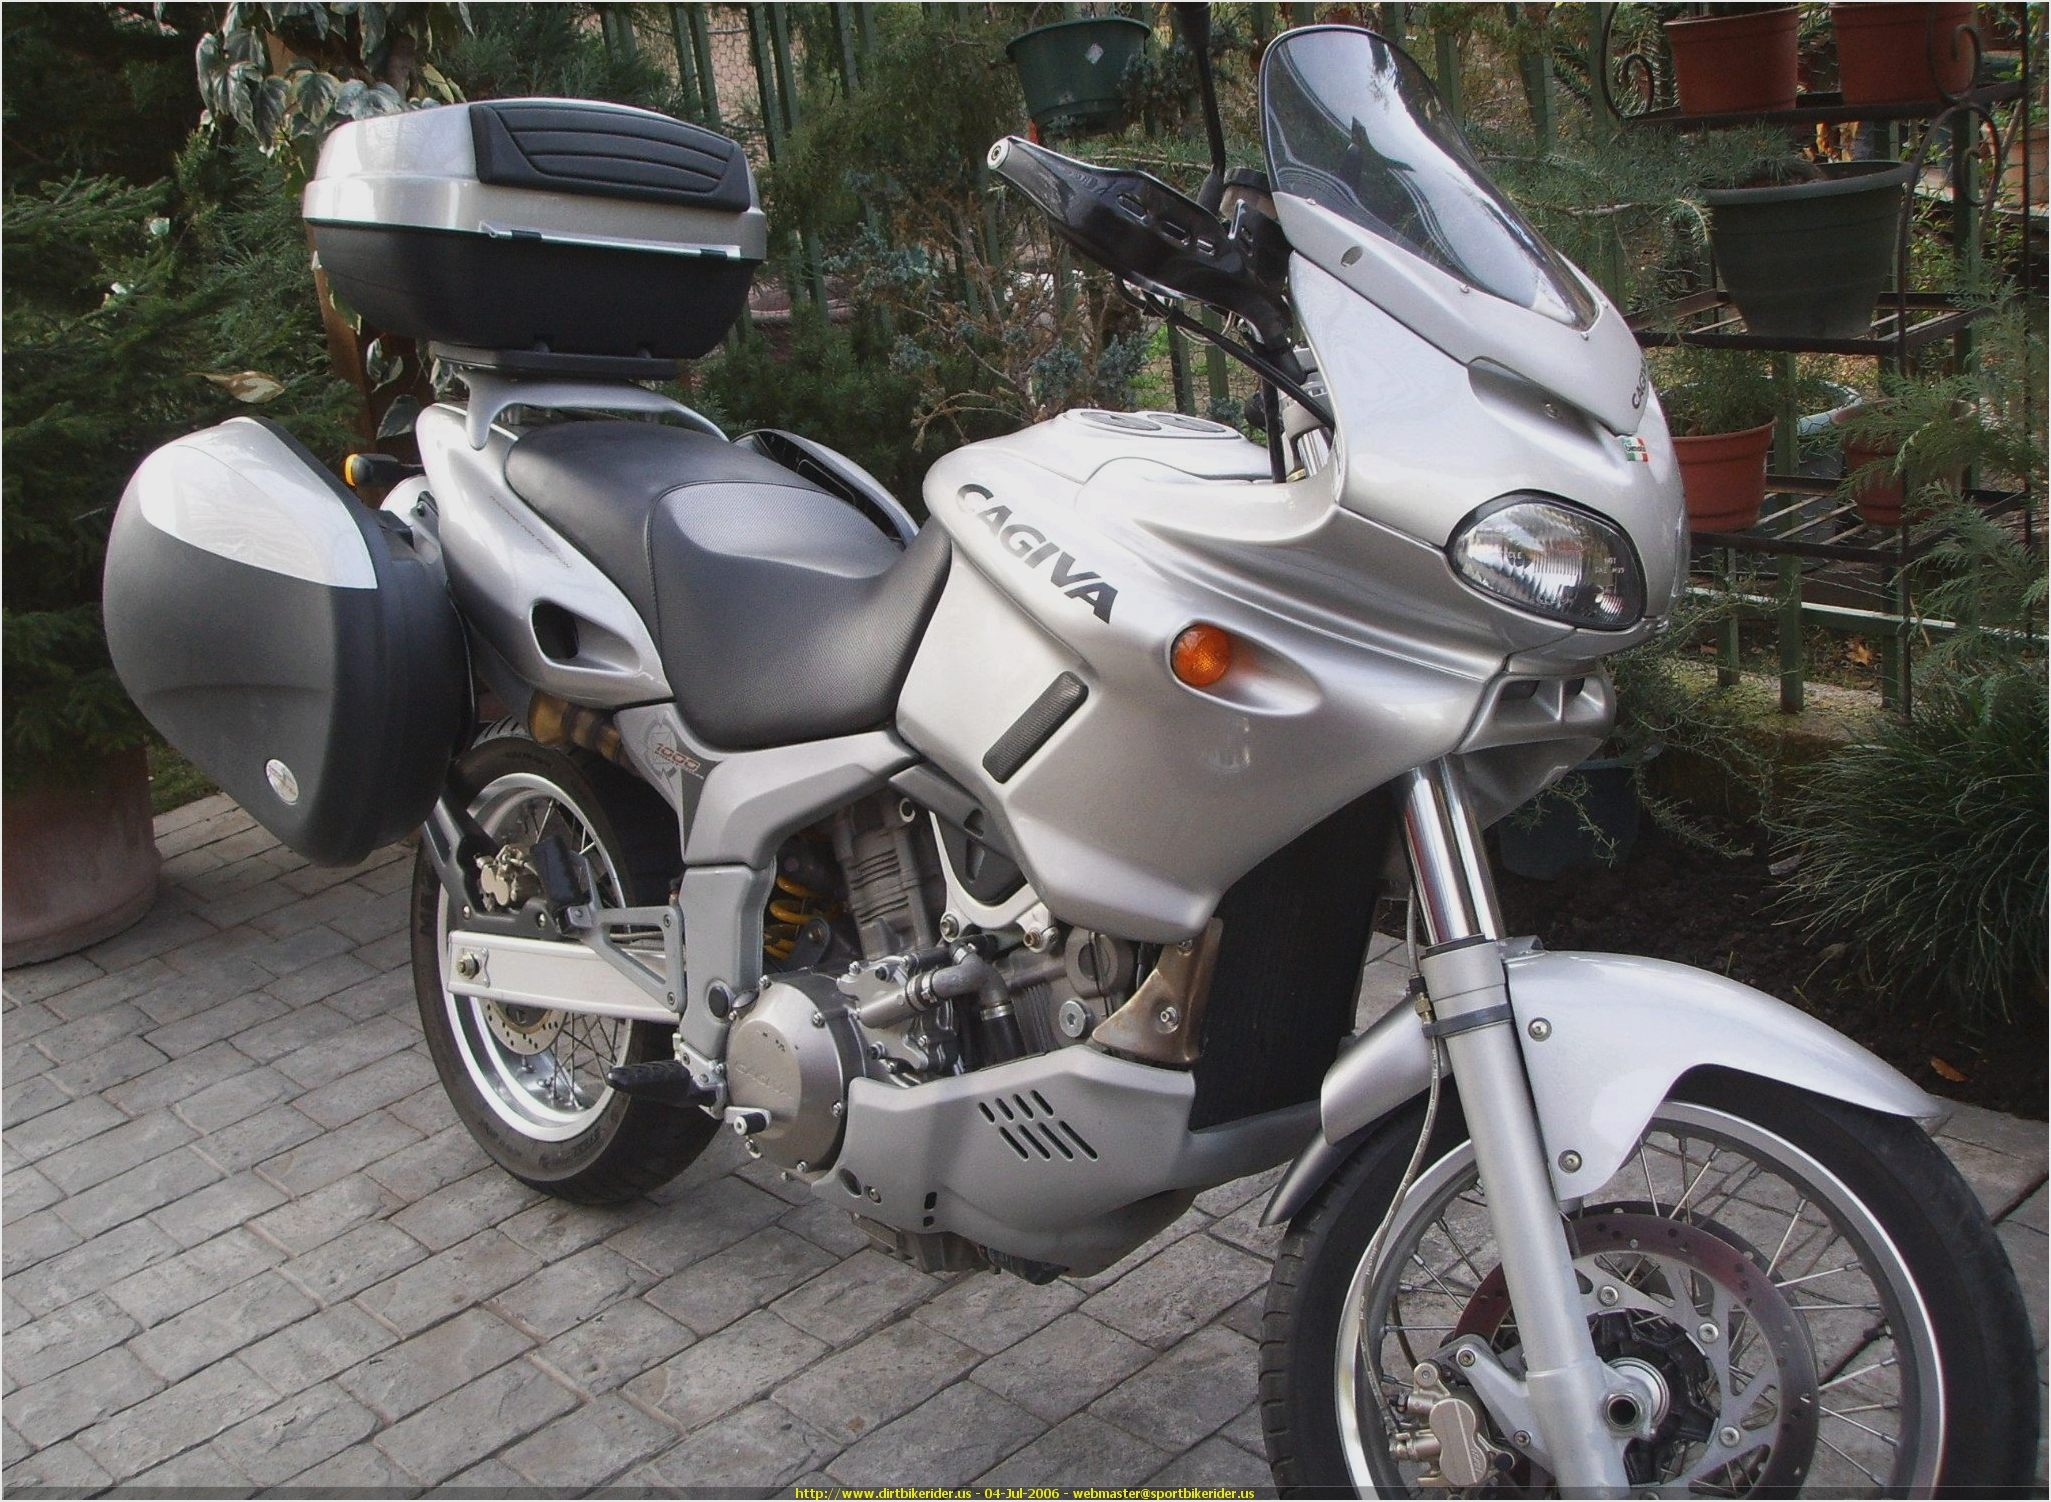 Cagiva Navigator 1000 2006 images #67725